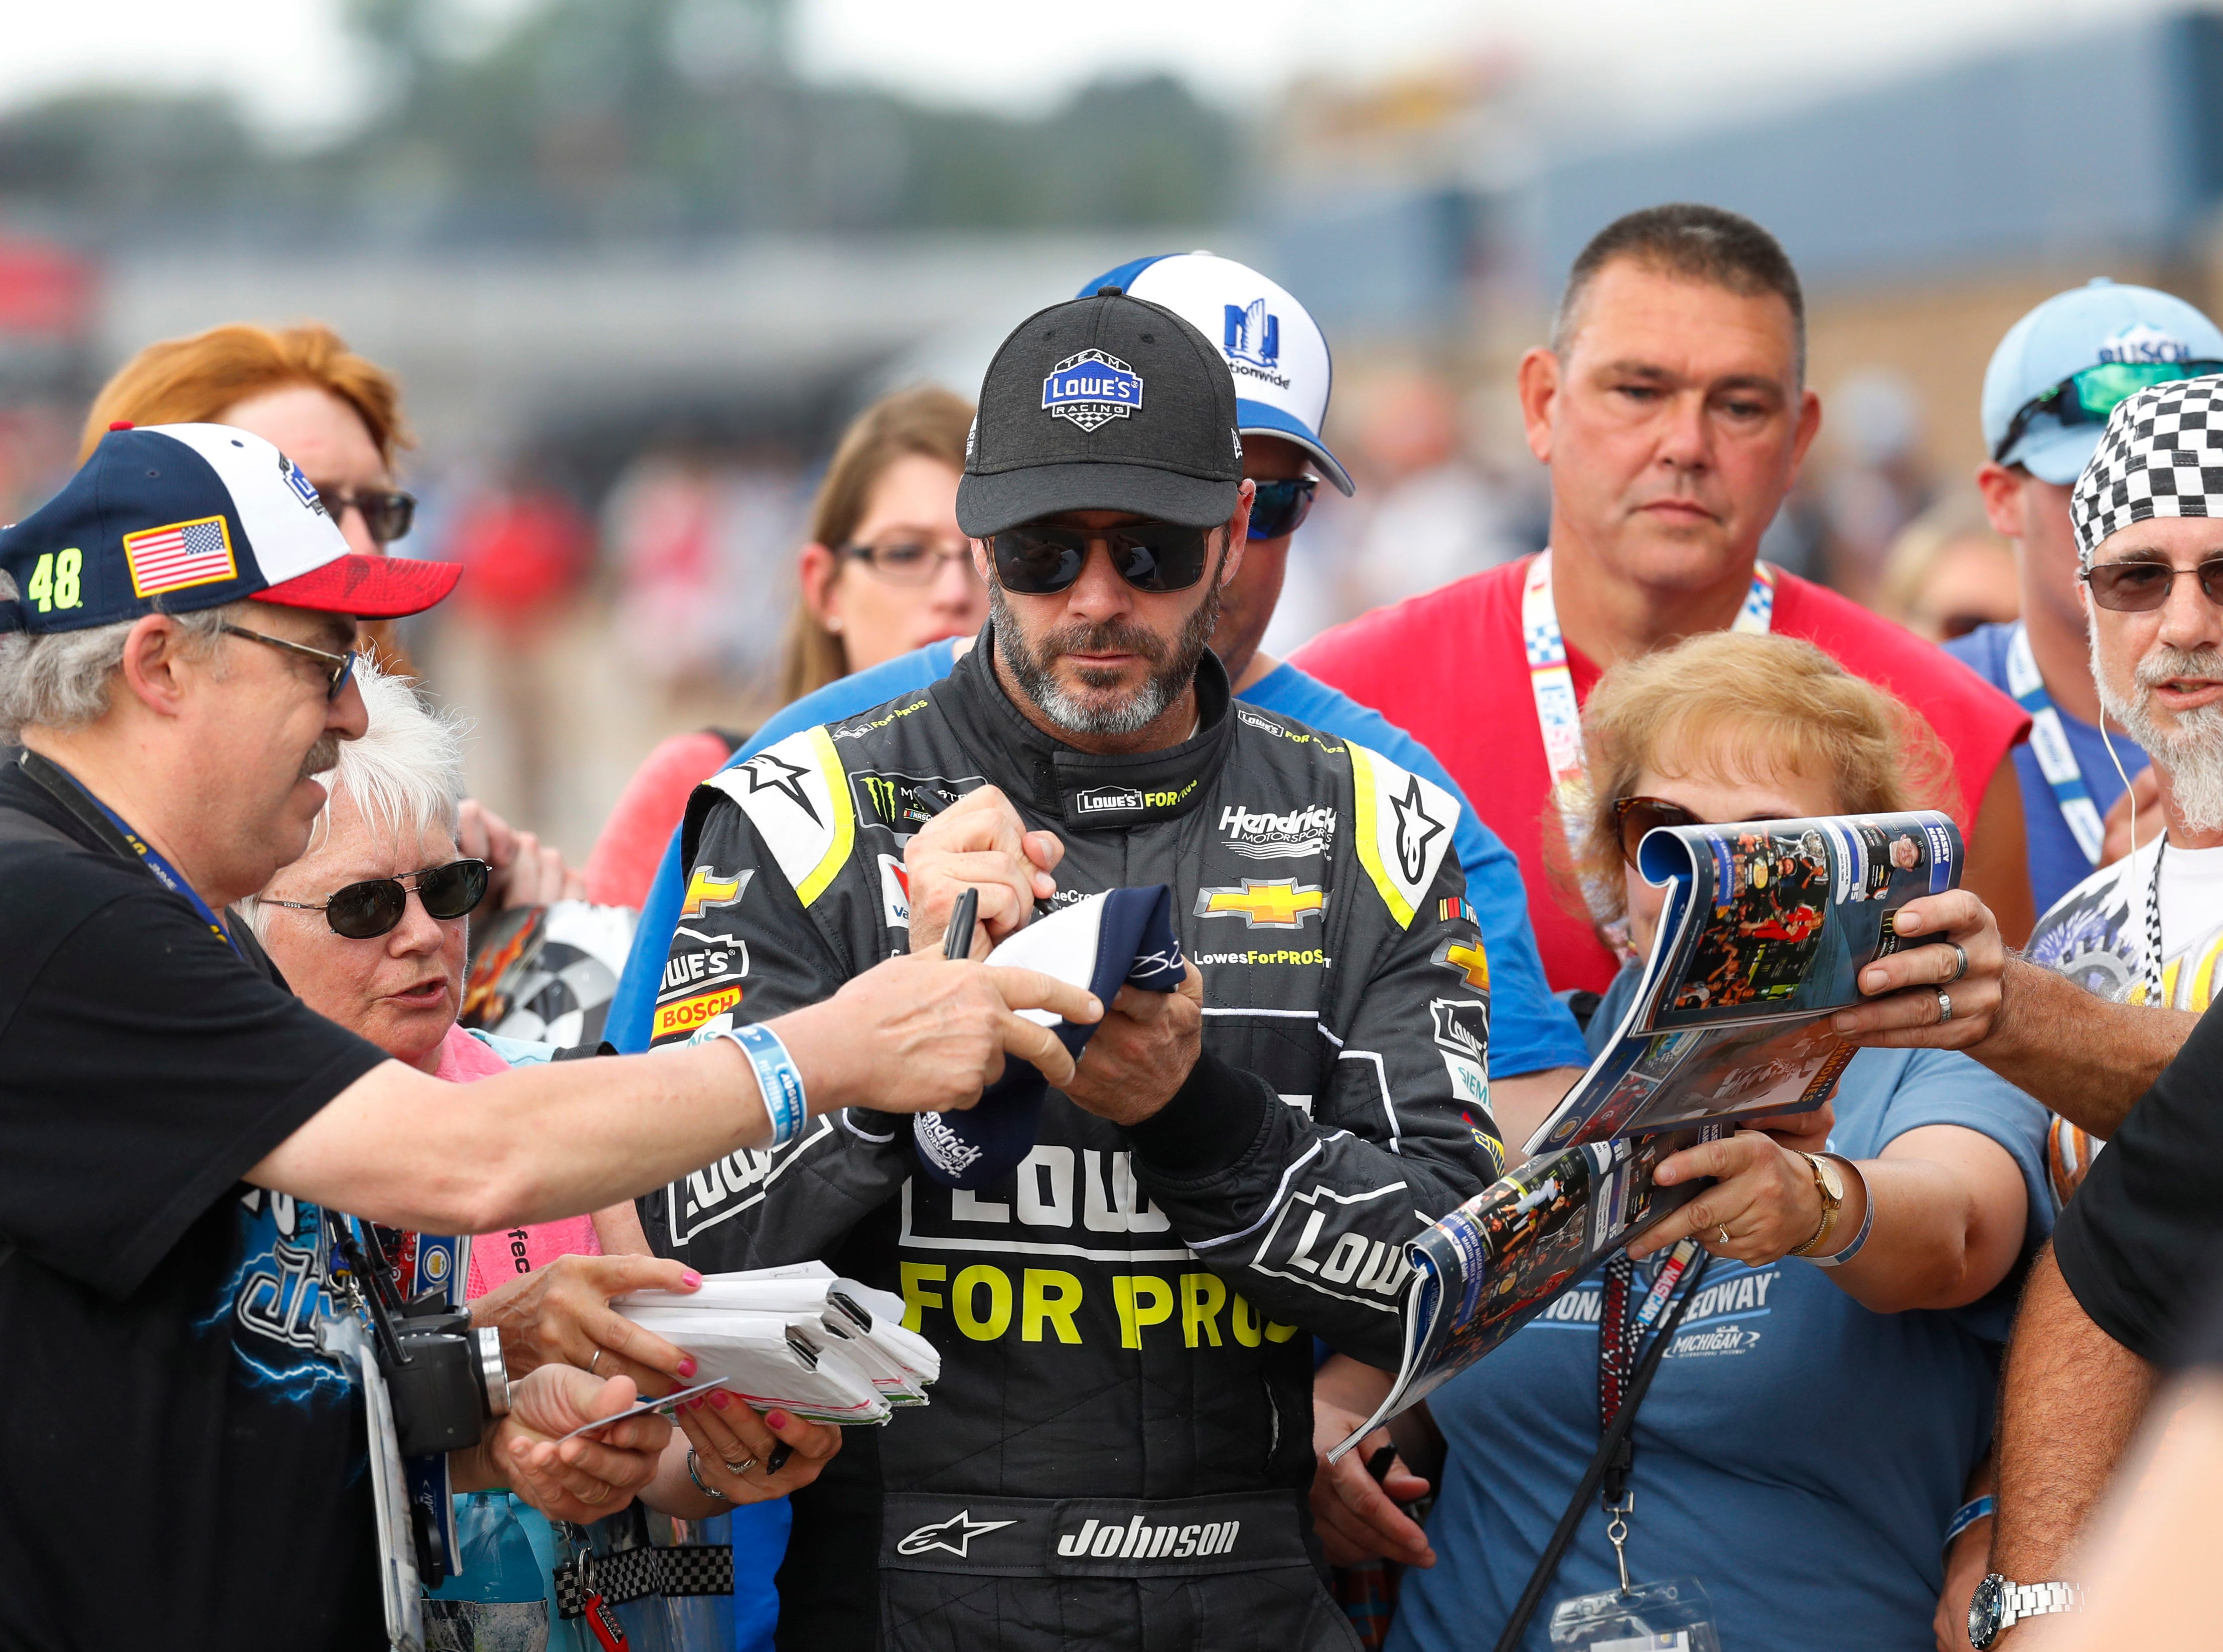 Jimmie Johnson signs autographs during qualifications for a NASCAR Cup Series auto race at Michigan International Speedway in Brooklyn, Mich., Friday, Aug. 10, 2018. (AP Photo/Paul Sancya)